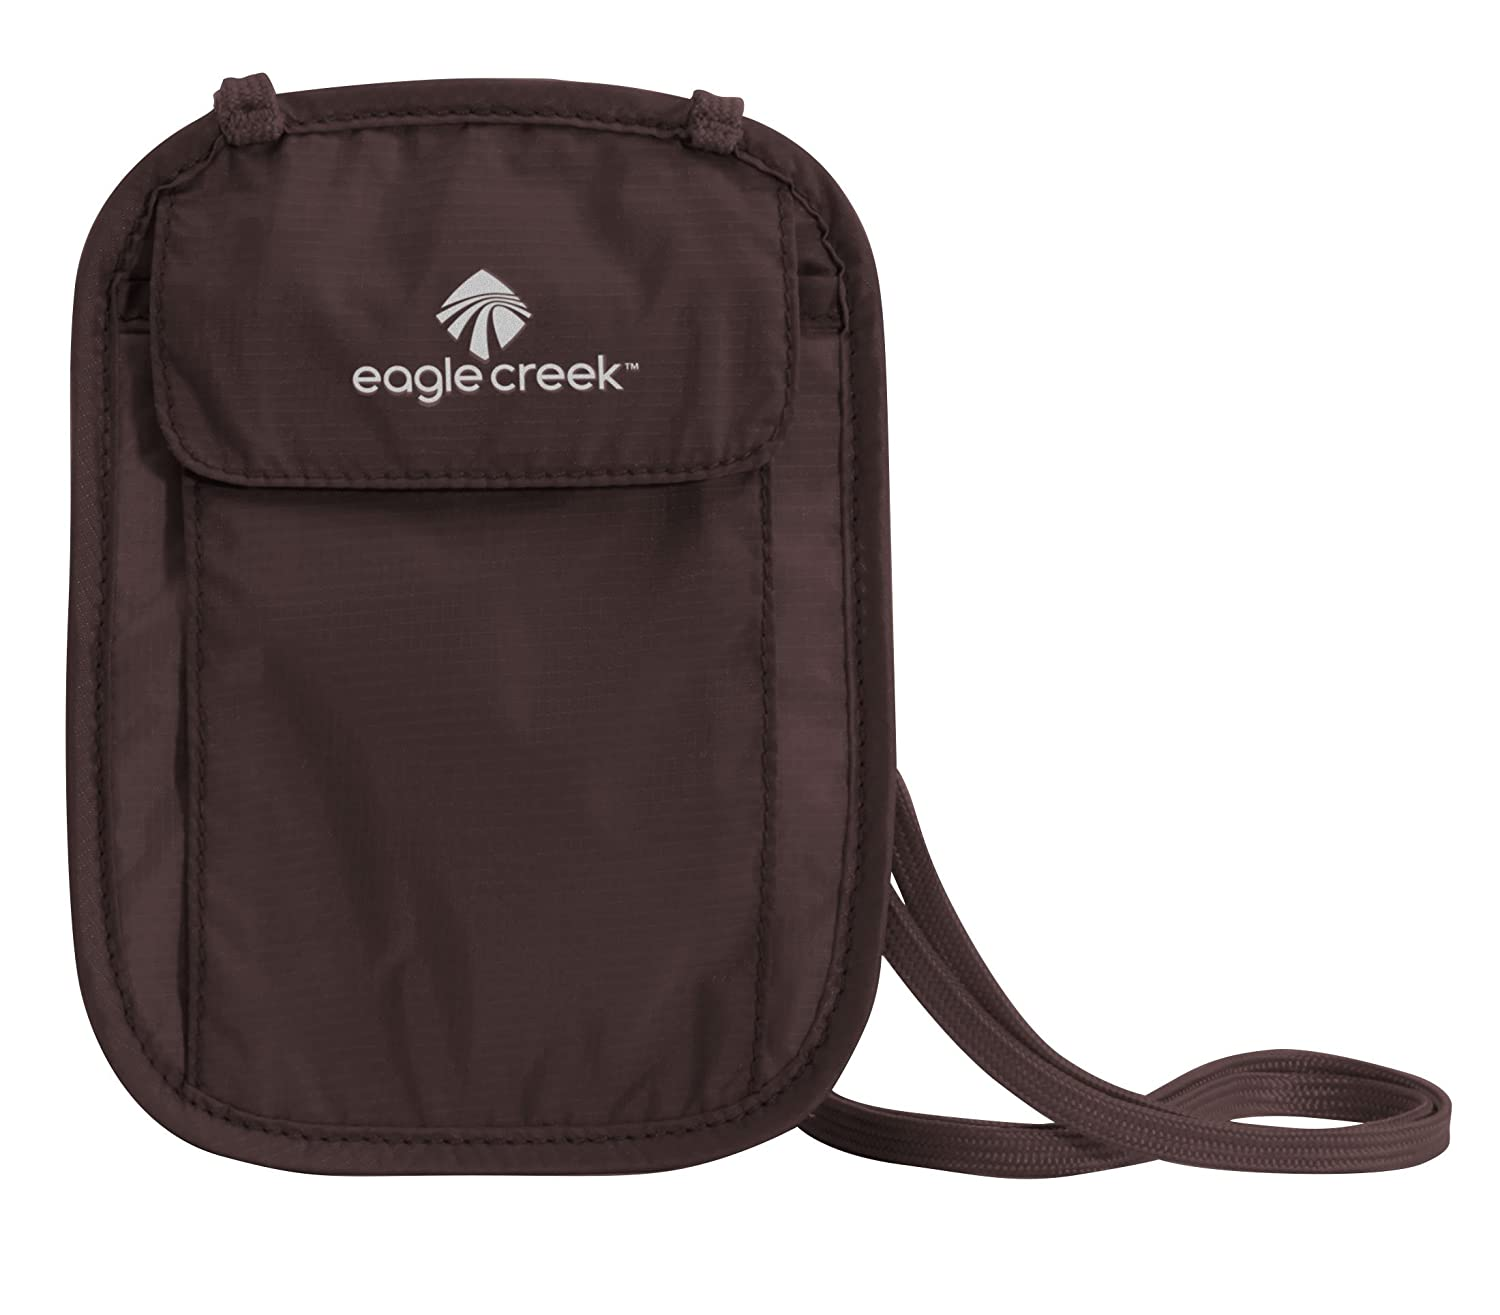 Eagle Creek Travel Gear Undercover Neck Wallet (Mocha) EC-41127050